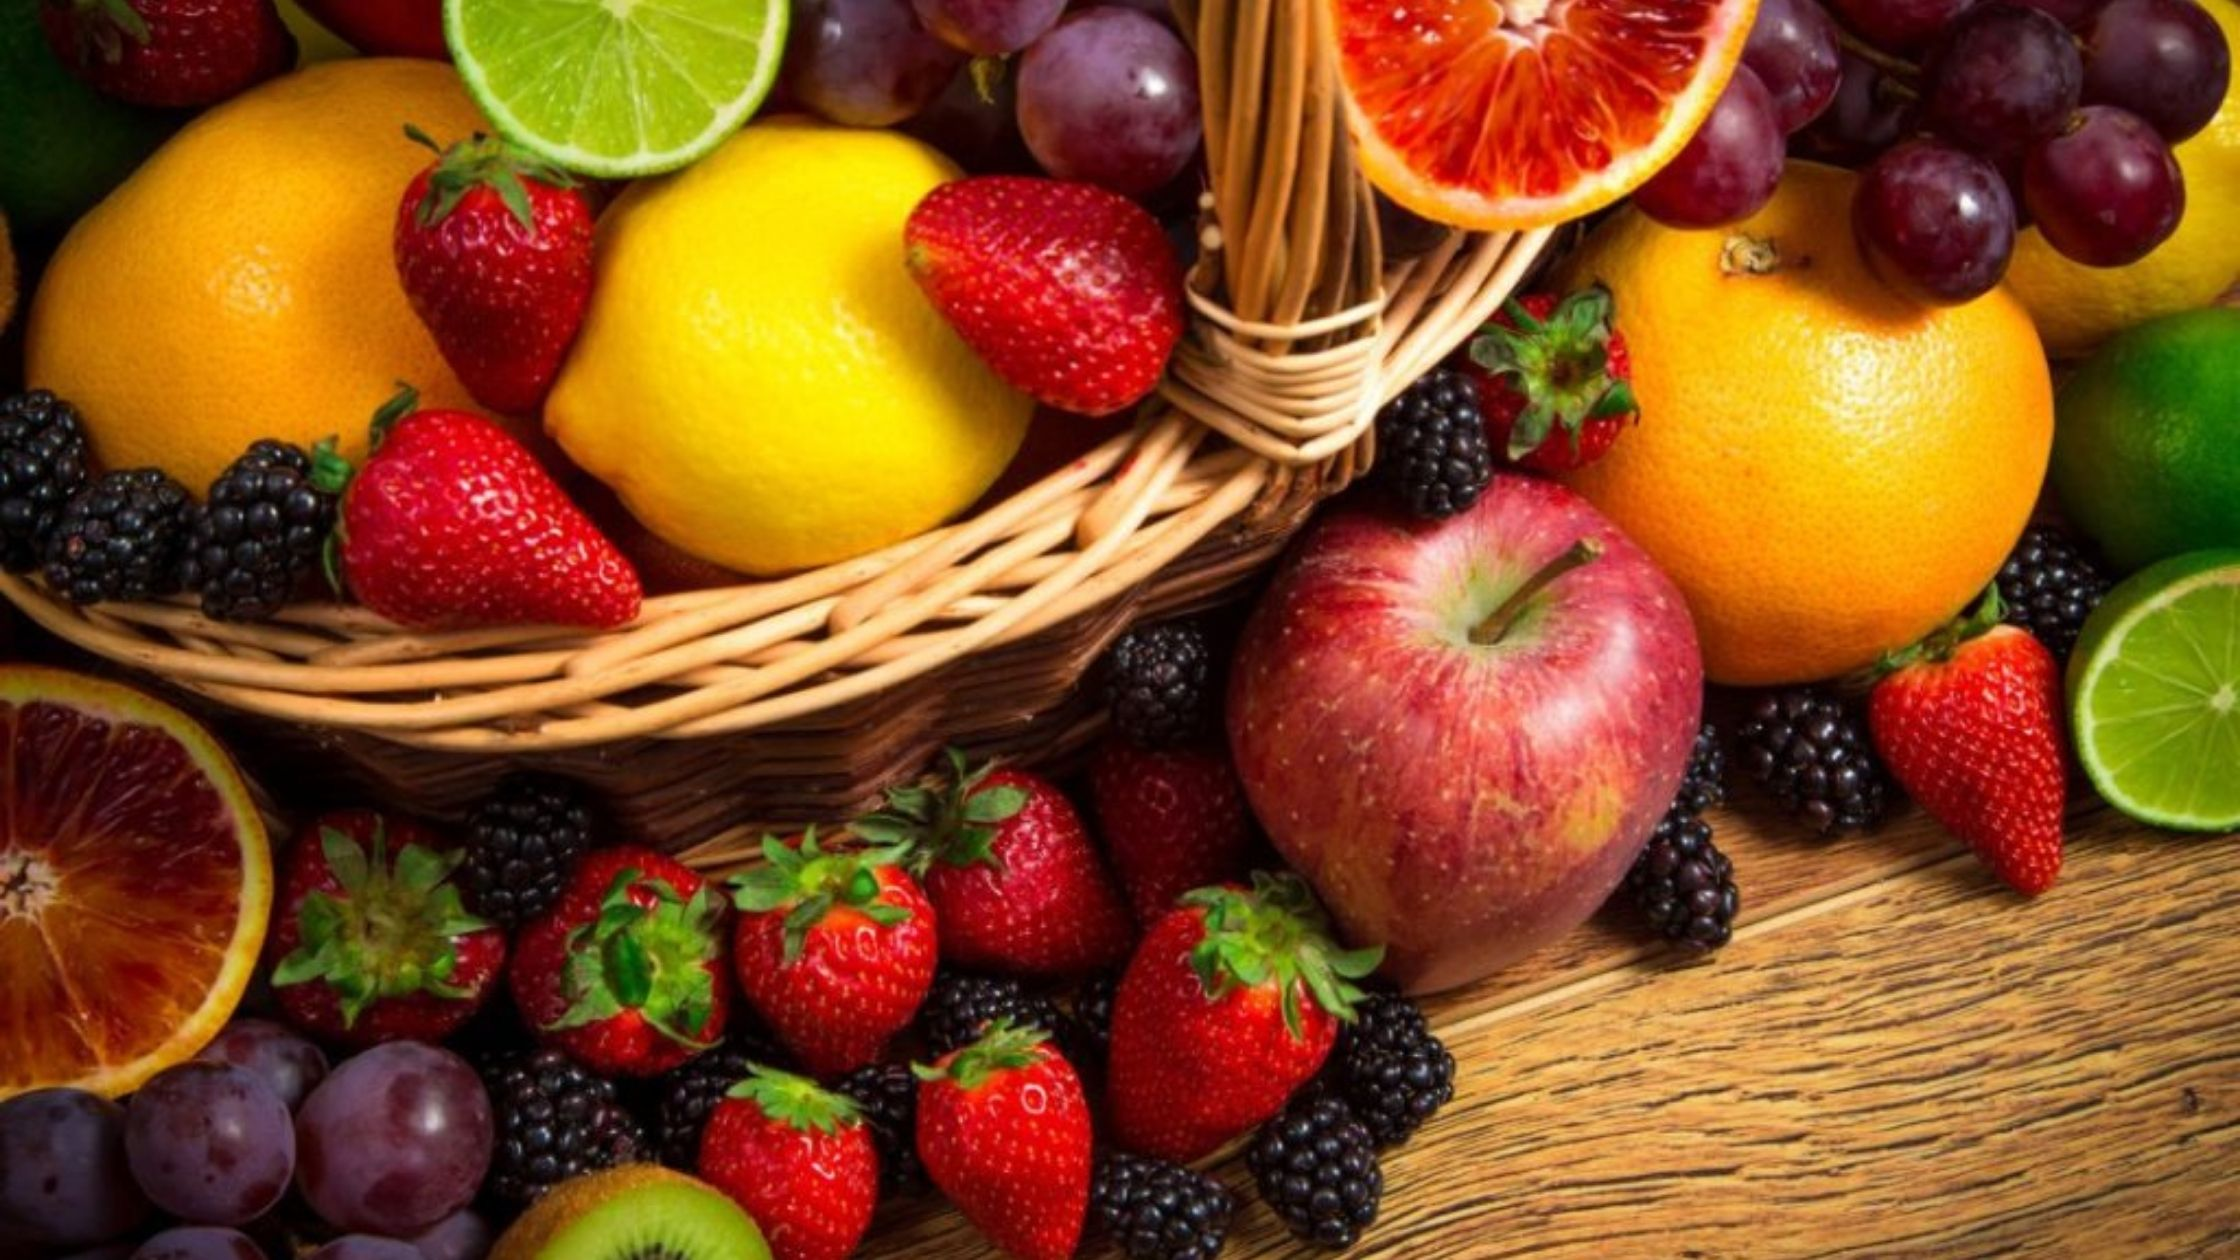 Fruits and berries on keto